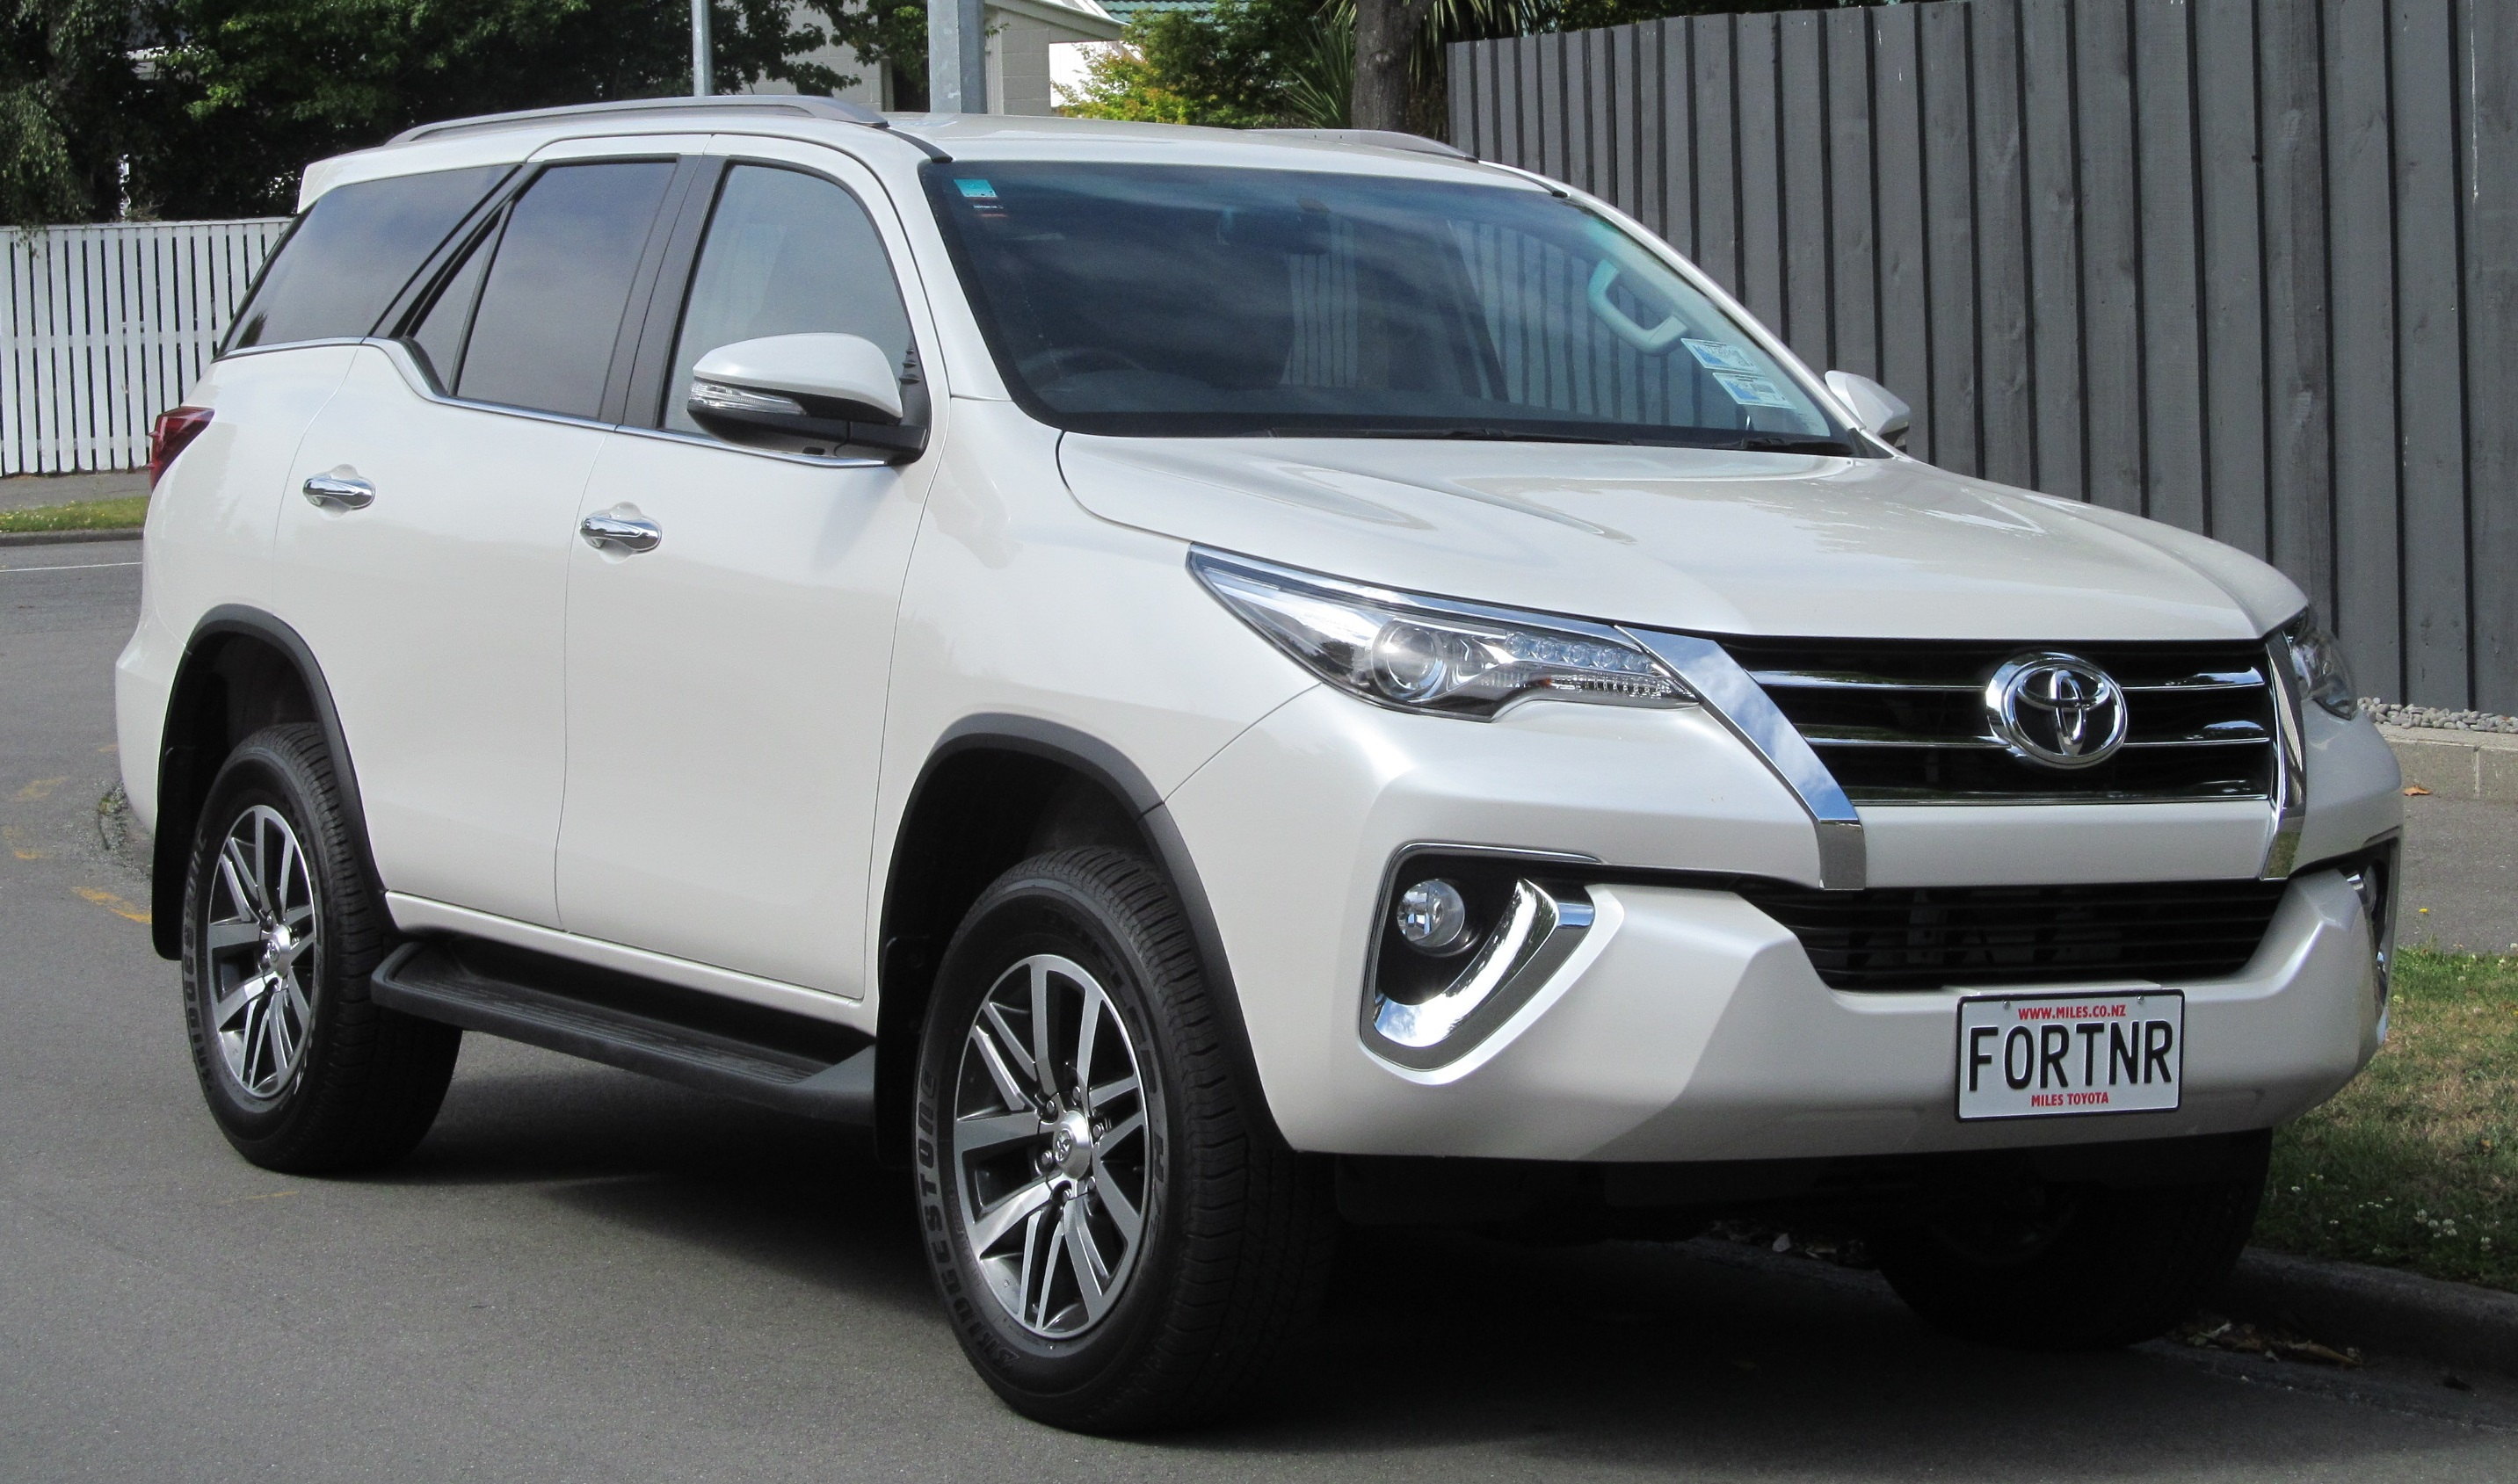 fortuner on rent in gwalior